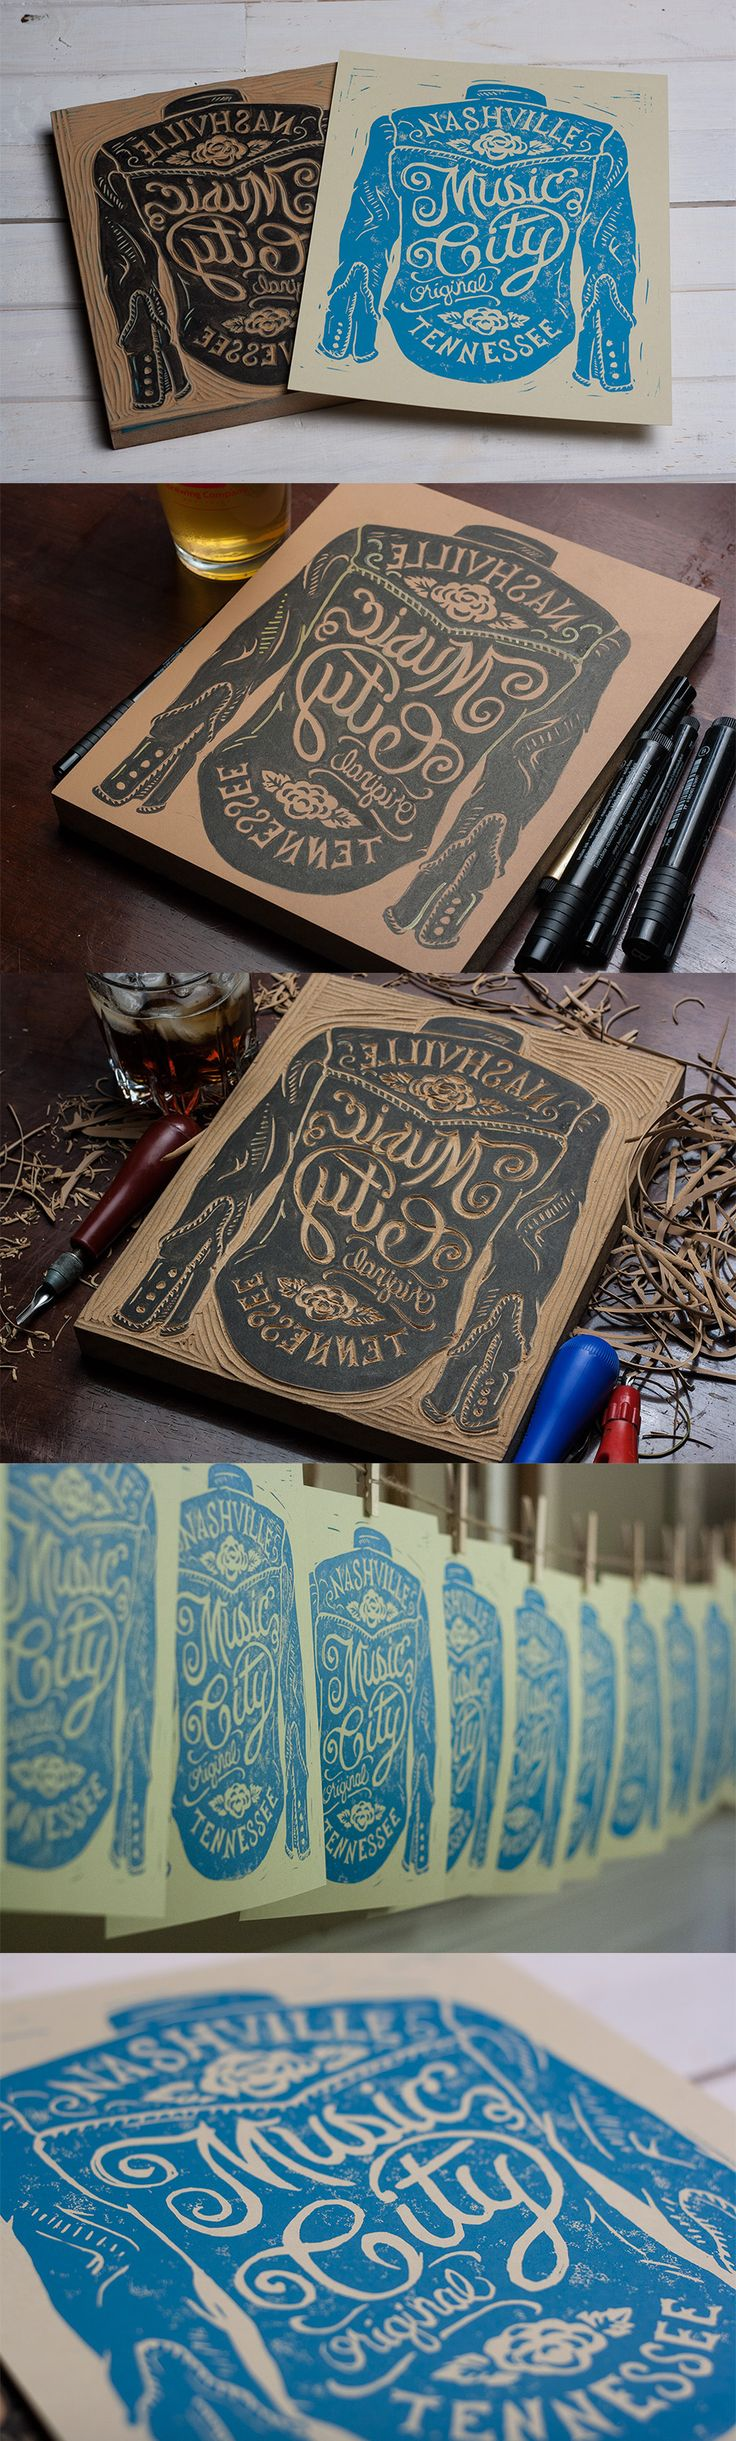 Block printing - Illustration - Hand lettering - Music-city-process